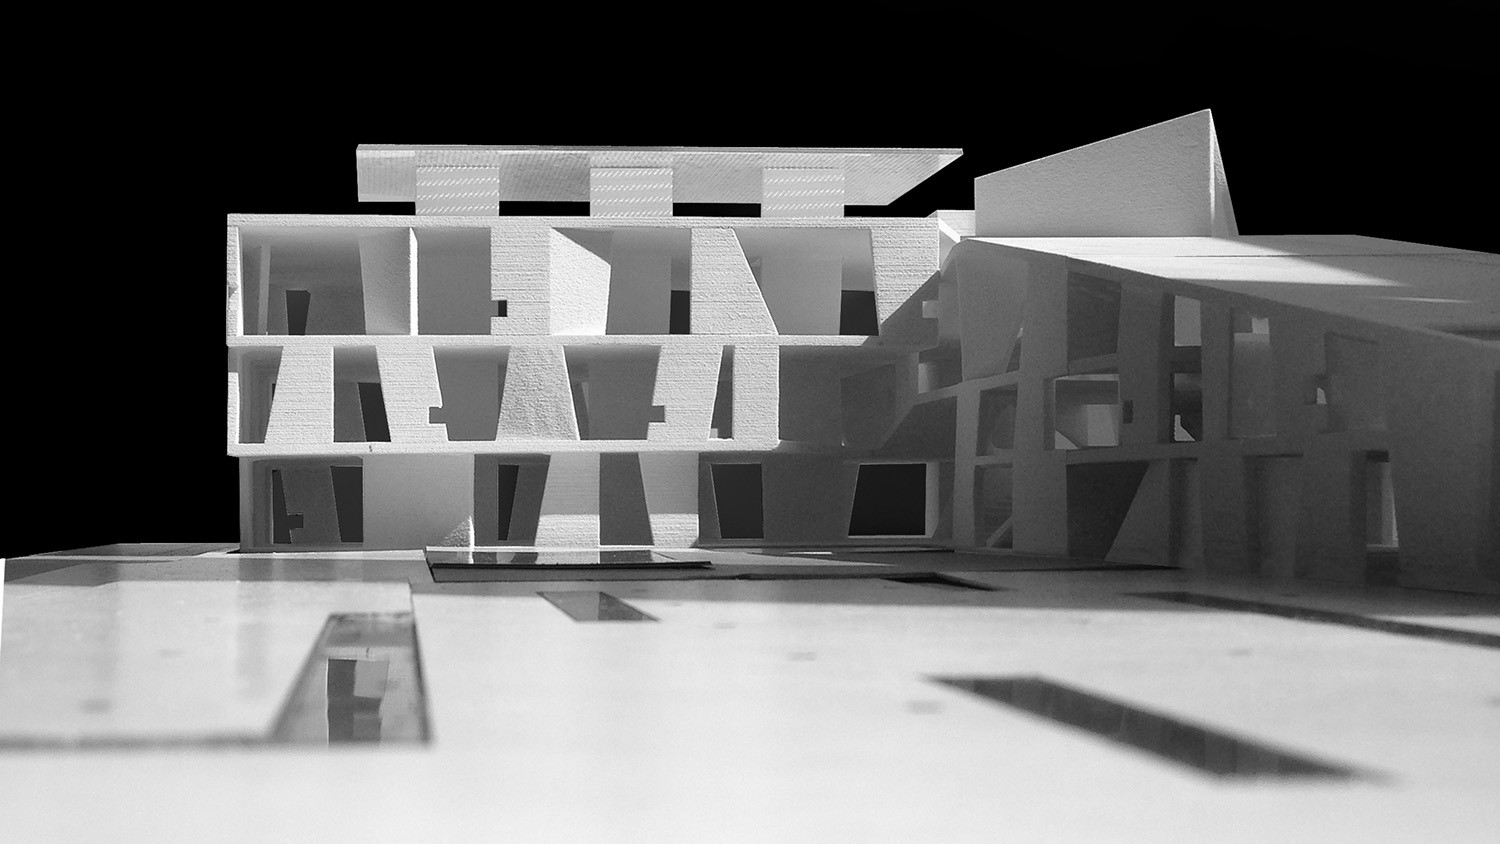 https://s3.us-east-2.amazonaws.com/steven-holl/uploads/projects/project-images/StevenHollArchitects_Glassell_IMG_2821_WH.jpg